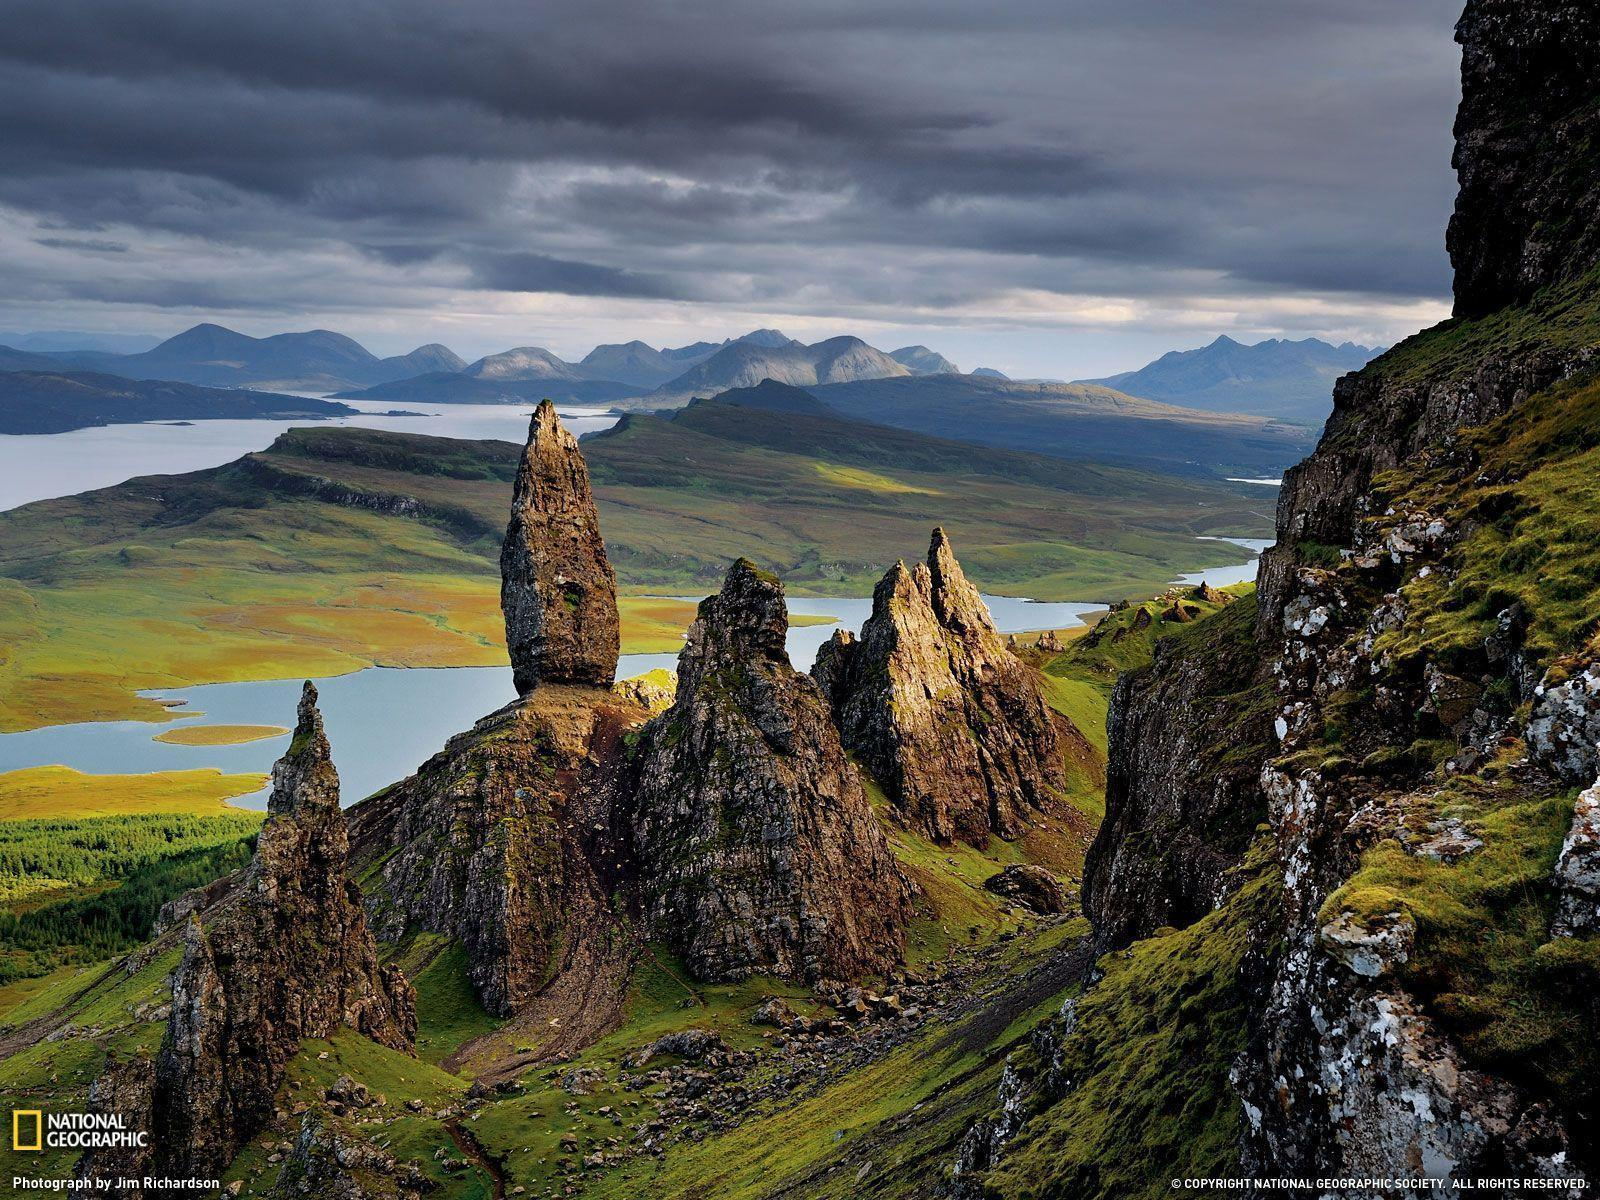 Scotland Wallpapers for Desktop - WallpaperSafari